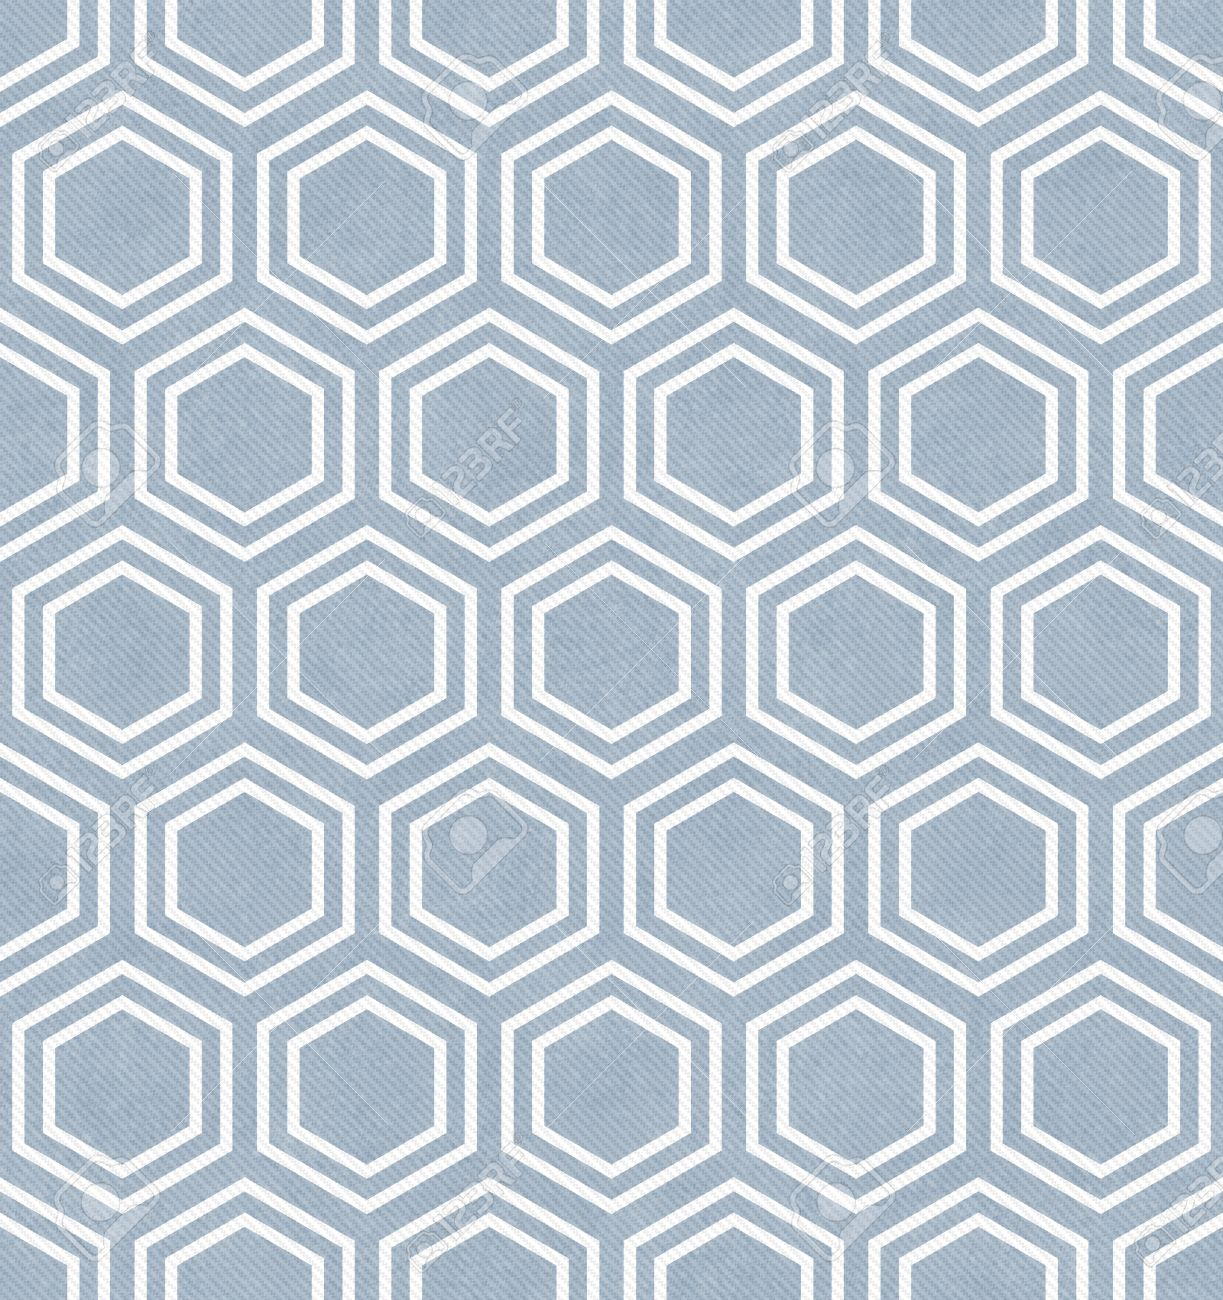 Blue And White Hexagon Tile Pattern Repeat Background Stock Photo ...